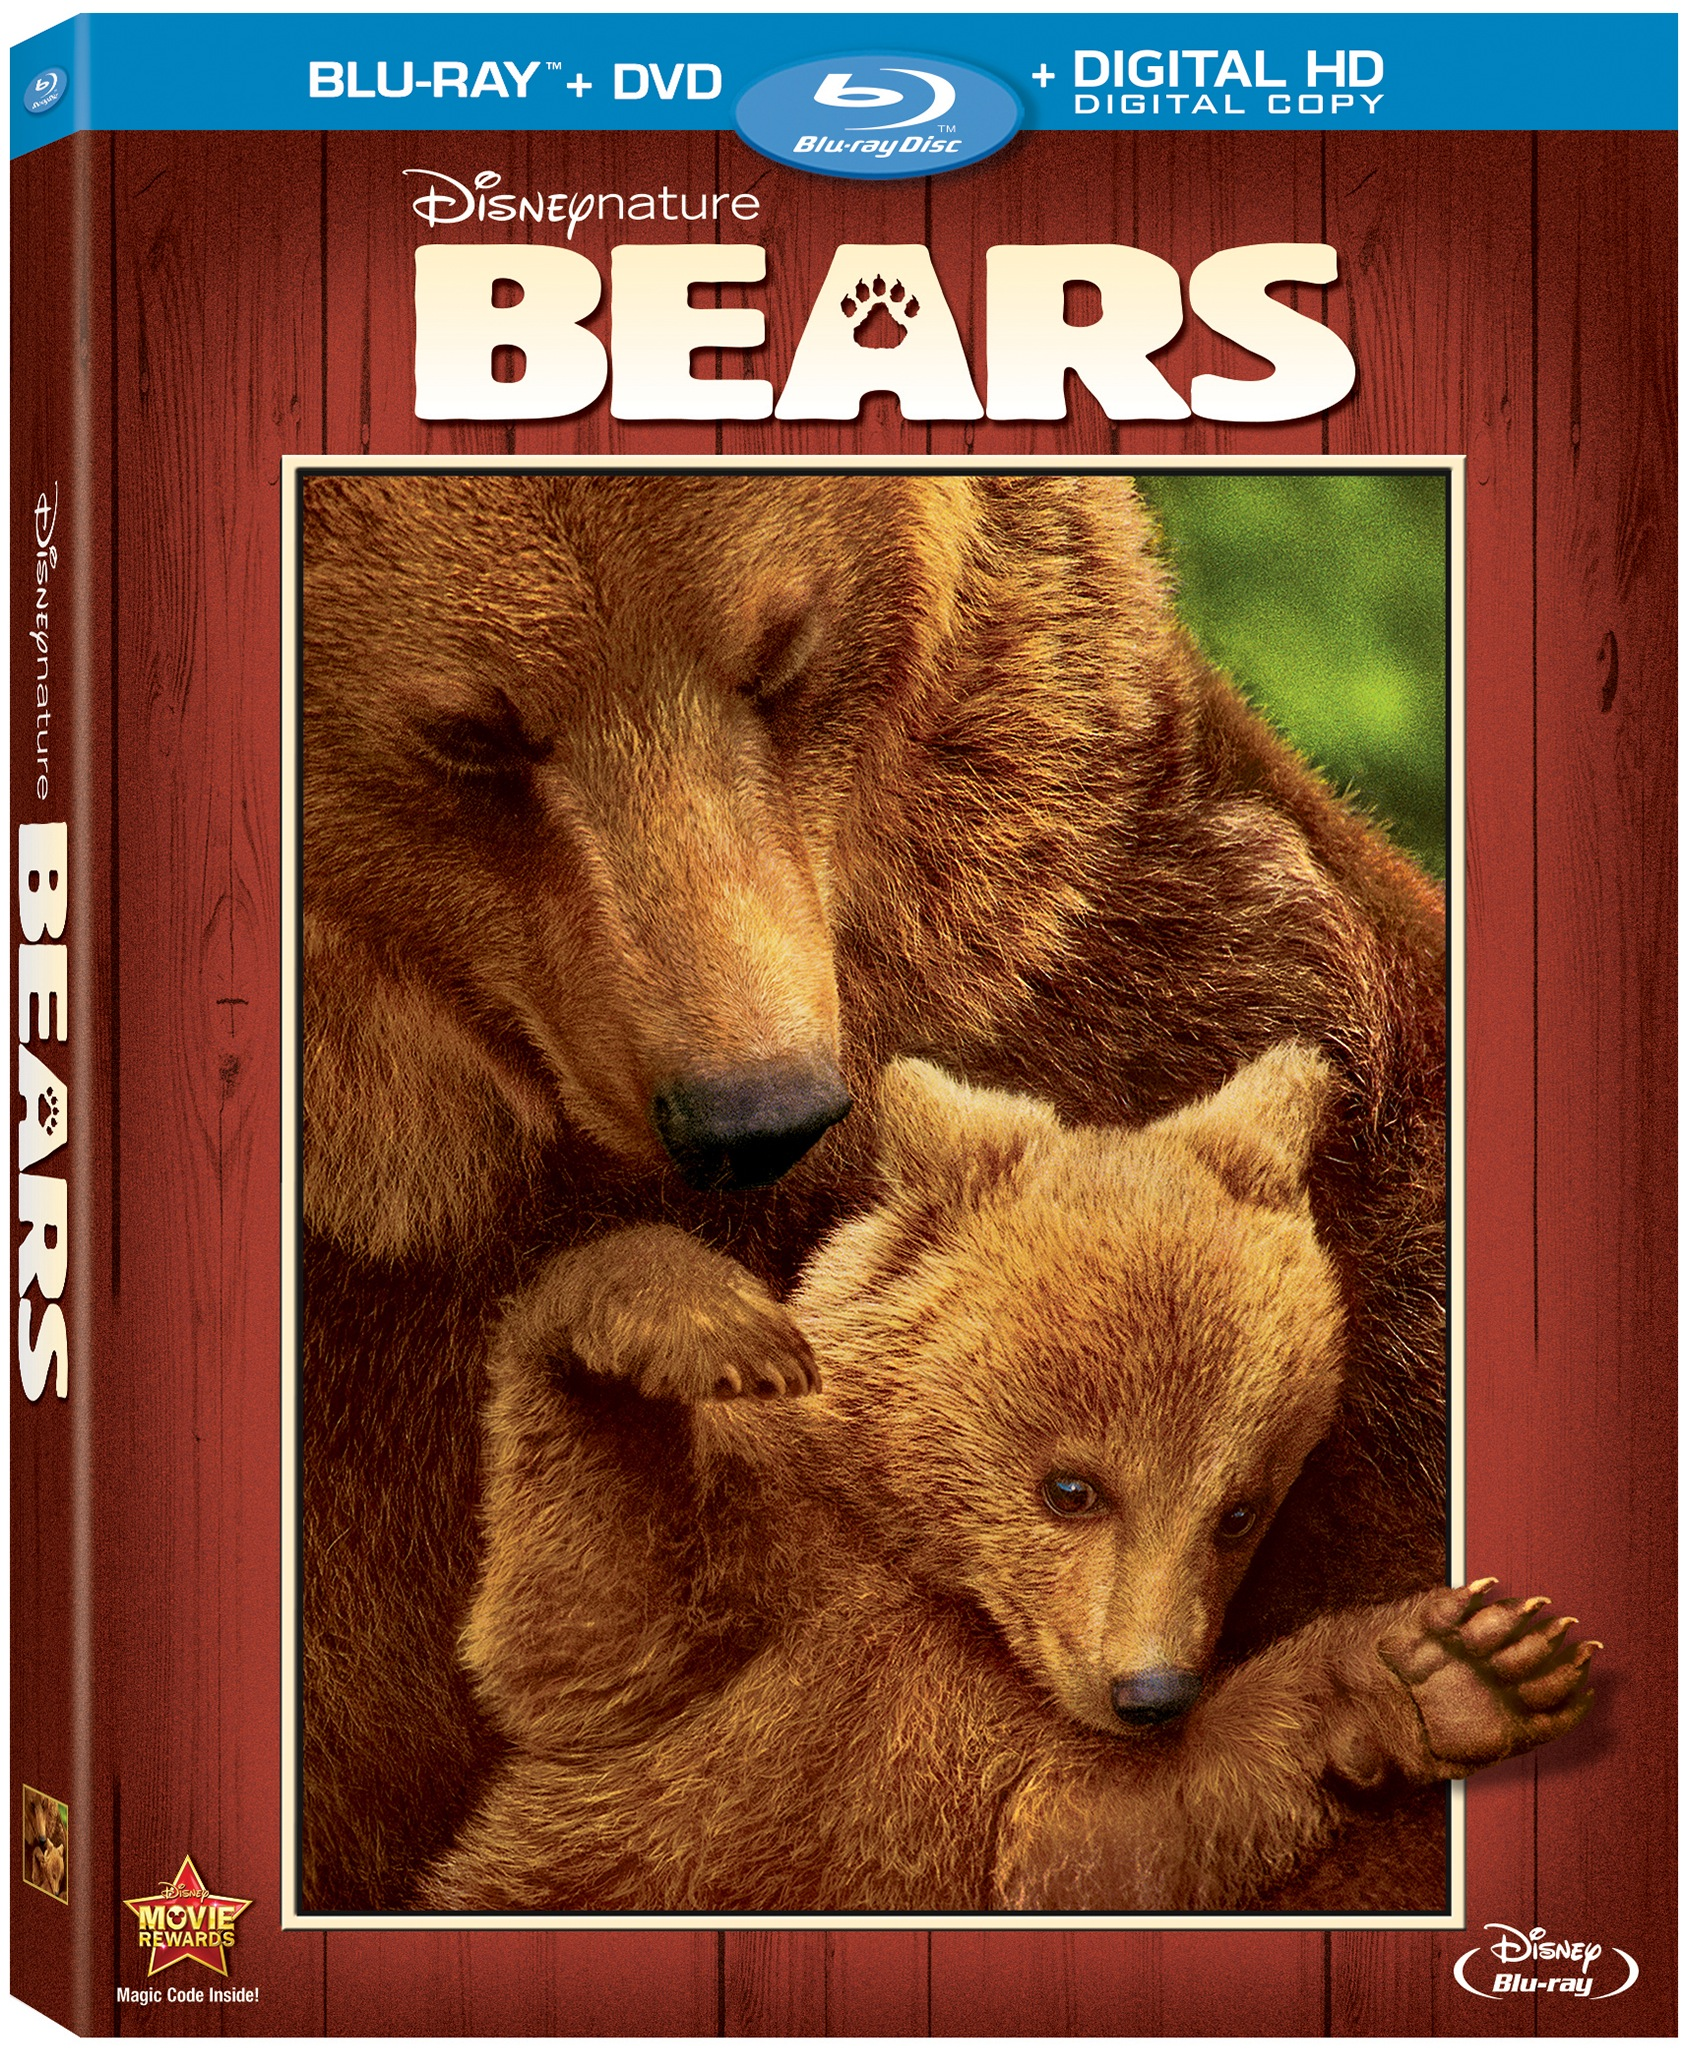 Help your kids learn all about BEARS with Disneynature [Blu Ray review + activity sheets]